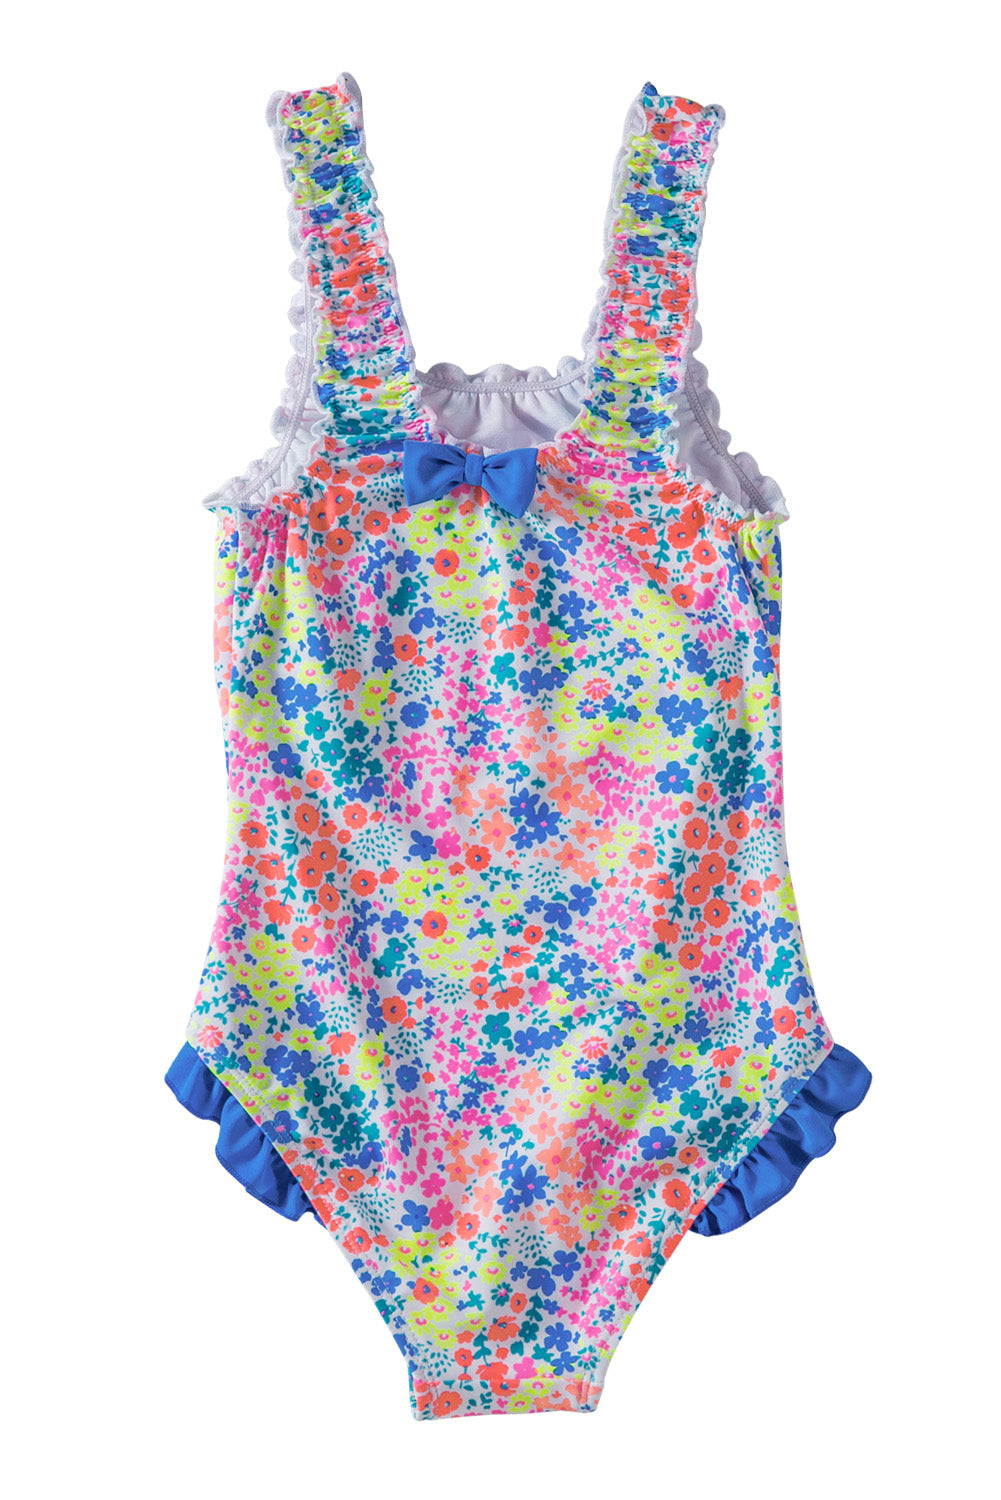 Multicolored Bow Ruffle Girls' One Piece Swimsuit